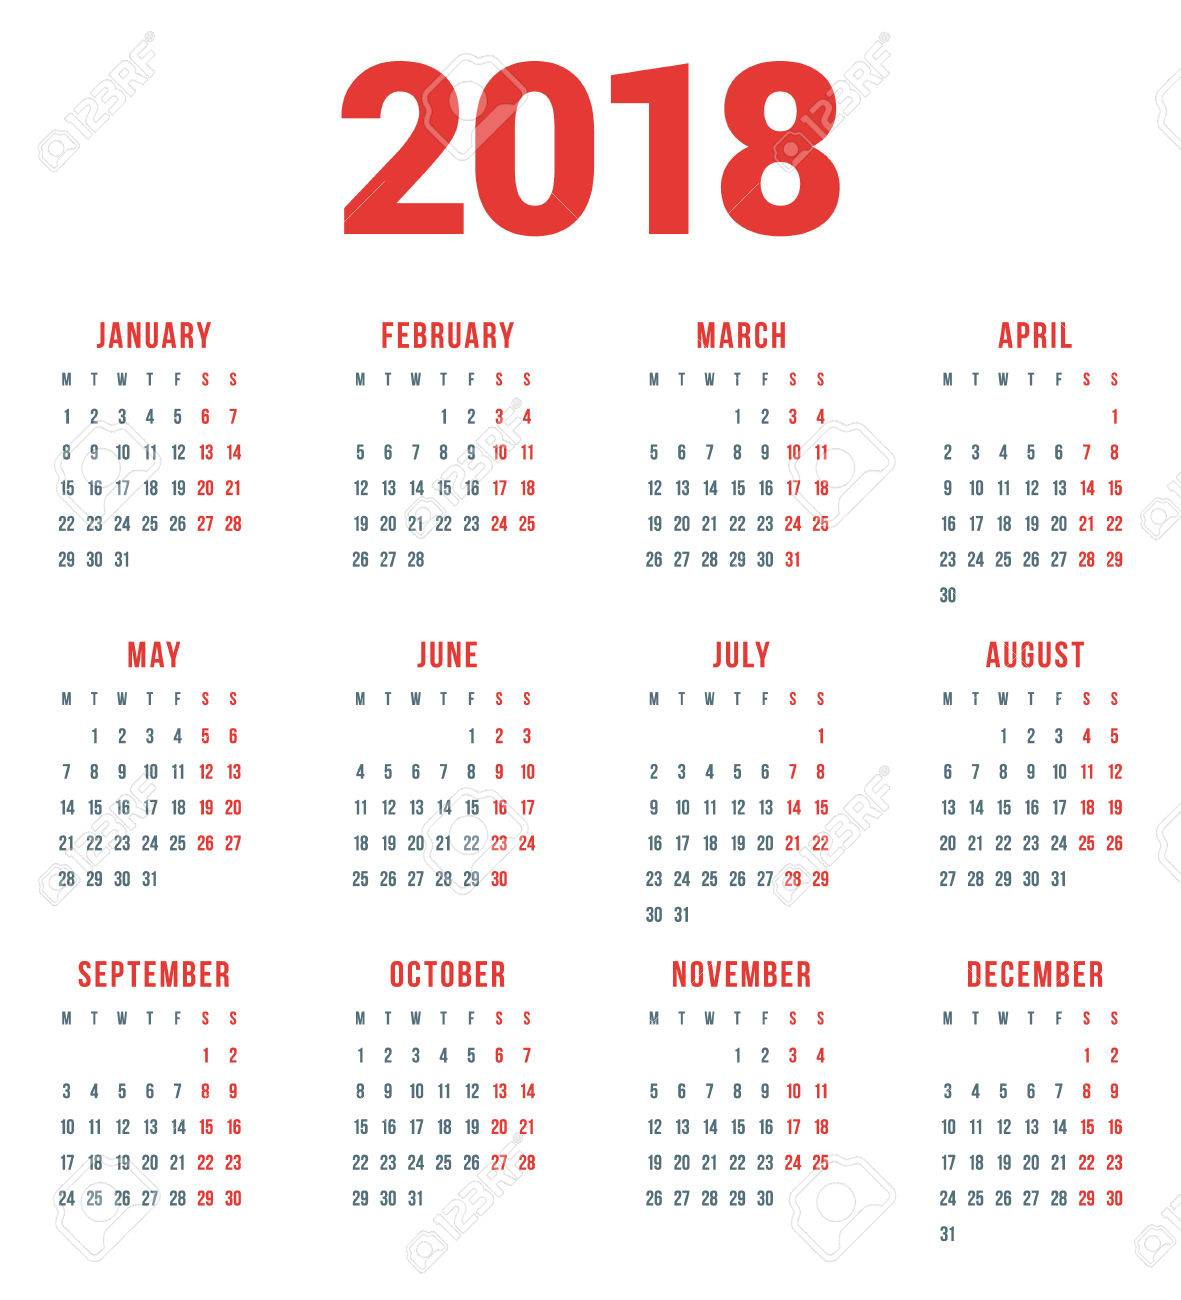 Calendar For 2018 Year On White Background. Week Starts Monday. 4 Columns,  3 Rows. Simple Vector Template. Stationery Design Template